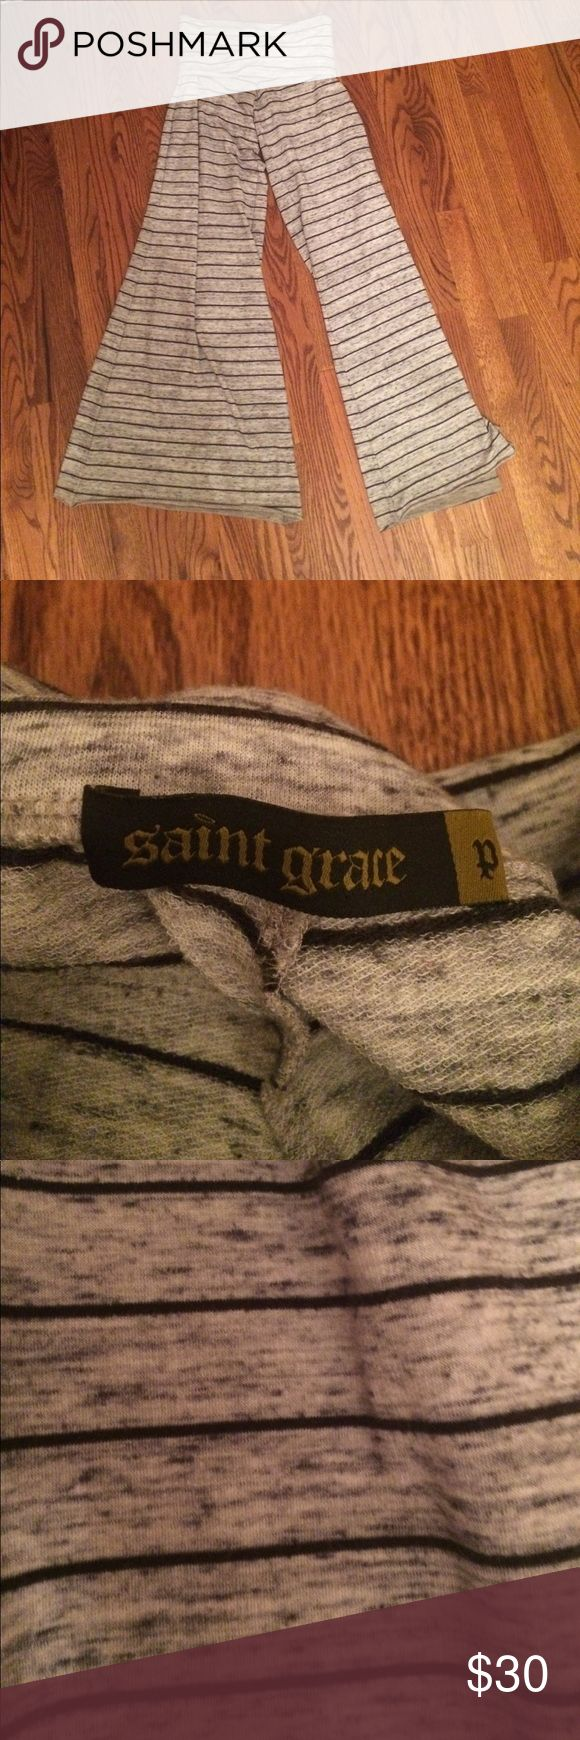 """Saint grace fold over wide leg sweatpants Super comfy wide leg and foldover sweatpants. Light gray with black horizontal stripes. Lightly worn. Bottoms were hemmed because they were soooooo long. Will fit someone 5""""3 or shorter! Saint Grace Pants Wide Leg"""